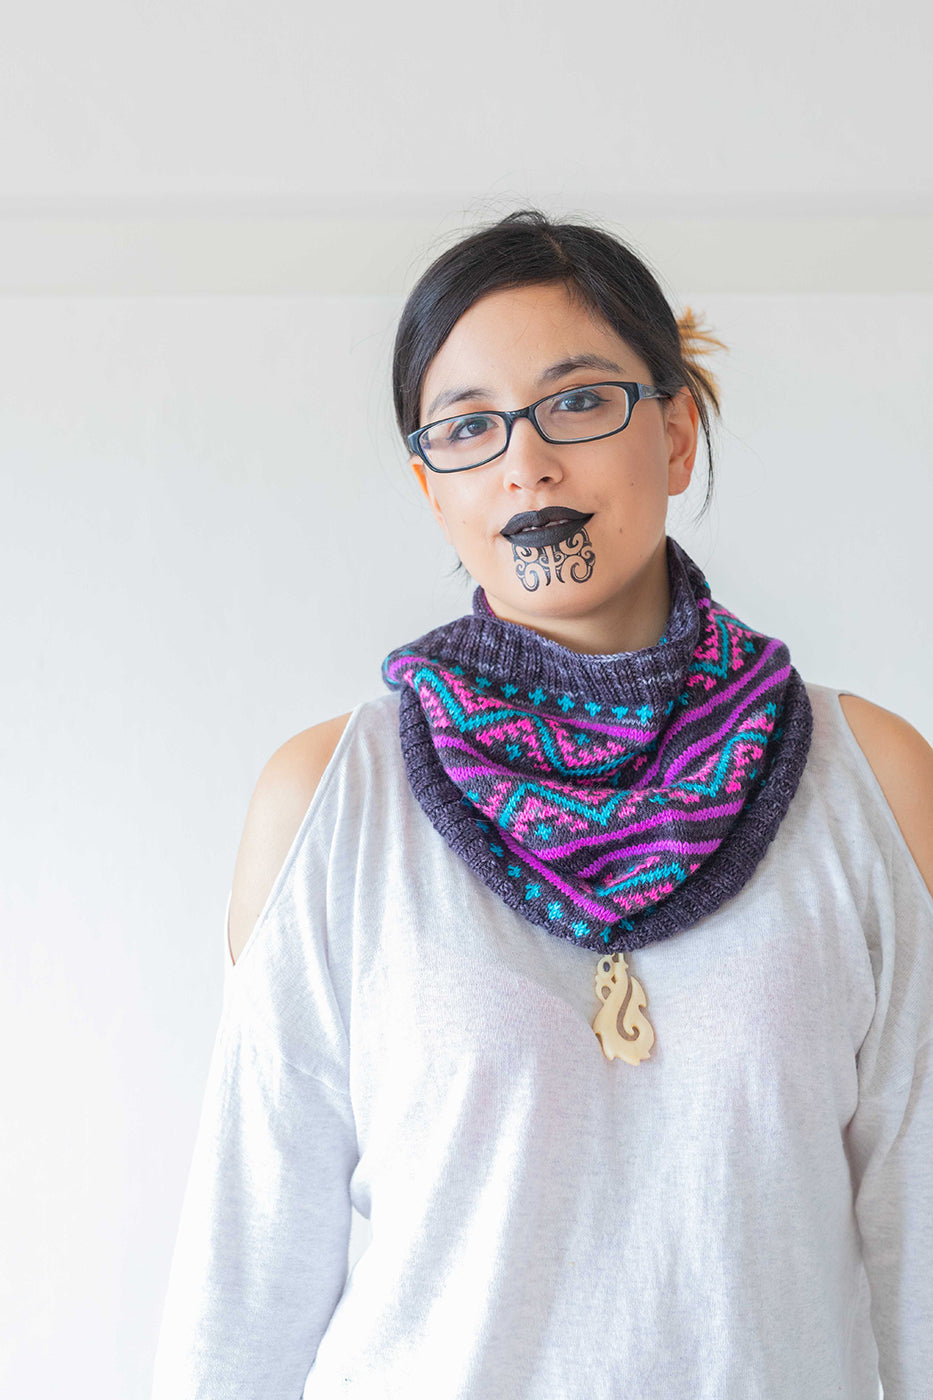 Photograph of women standing looking straight faced at the camera.  Women is wearing glasses and has face tribal painting on her chin.  Women is wearing a long sleeved white top with a colorful knit scarf in purple, blue and pink.